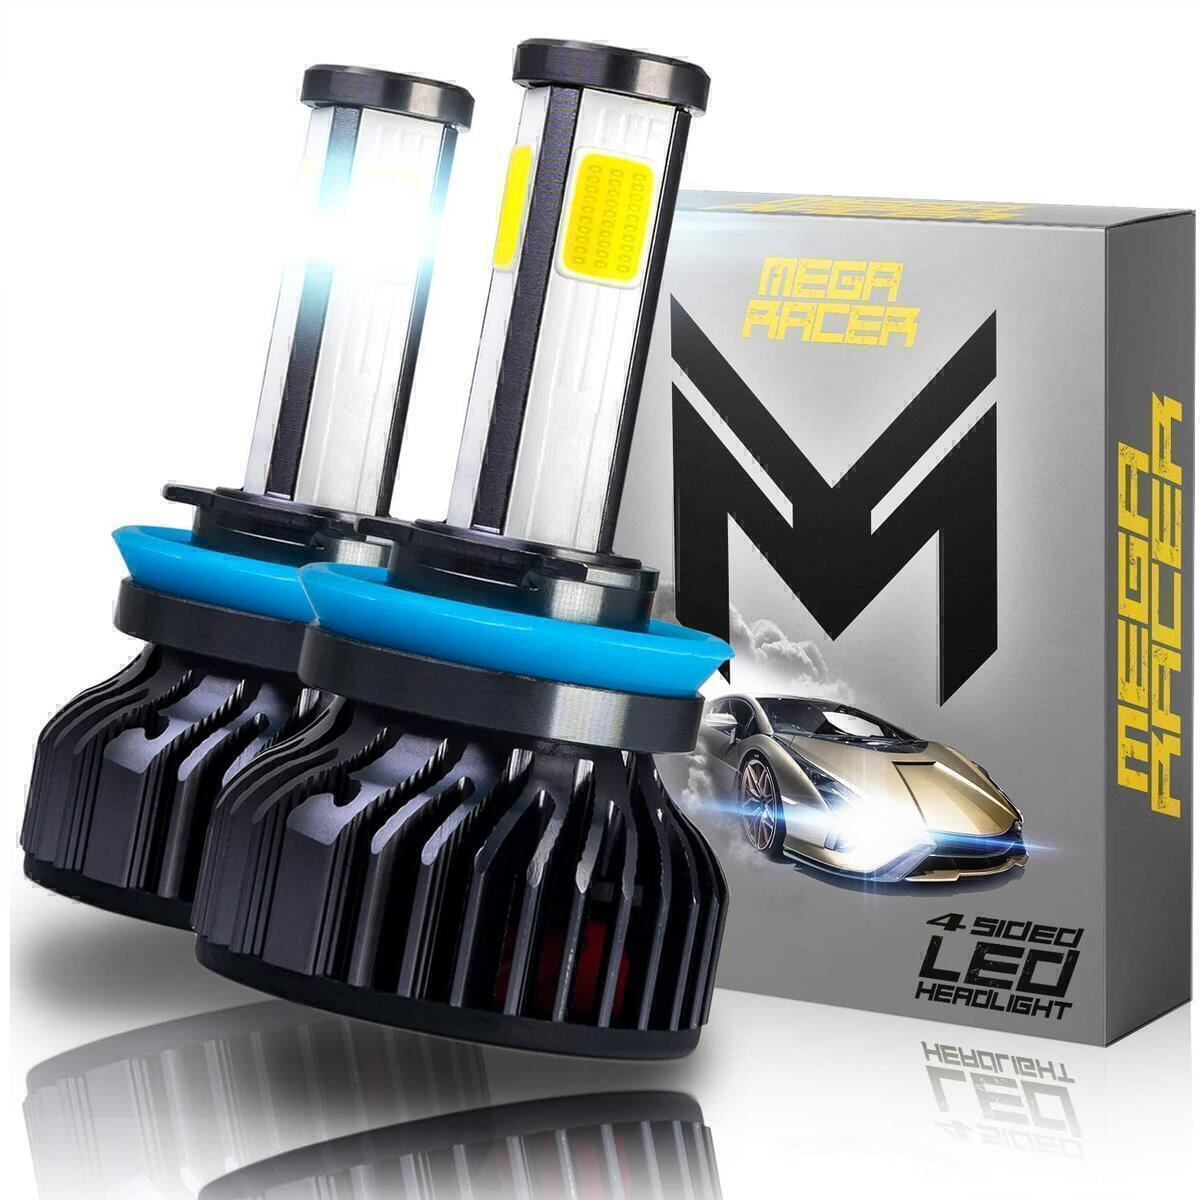 Mega Racer 4 Sided H11/H8/H9/H16 LED Headlight Bulb - Low Beam, High Beam, or Fog Light 60 Watt 6000K Diamond White 10000 LM COB IP68 Waterproof Rating, 2 Pieces